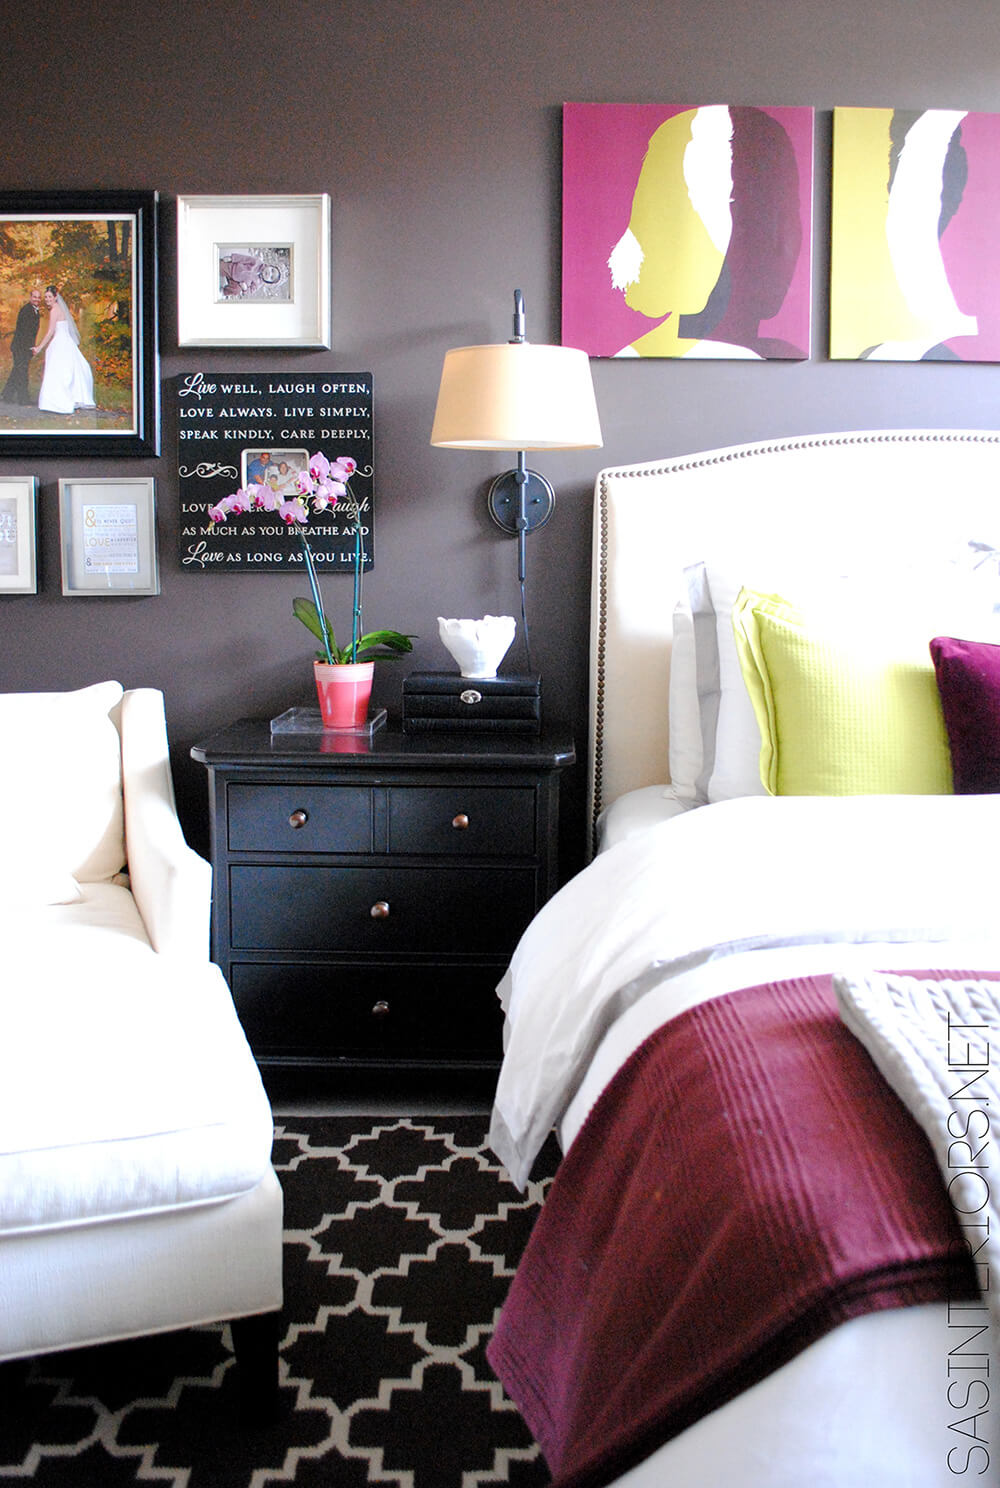 3 Bedroom Color Trends to Follow This Year – Adorable Home